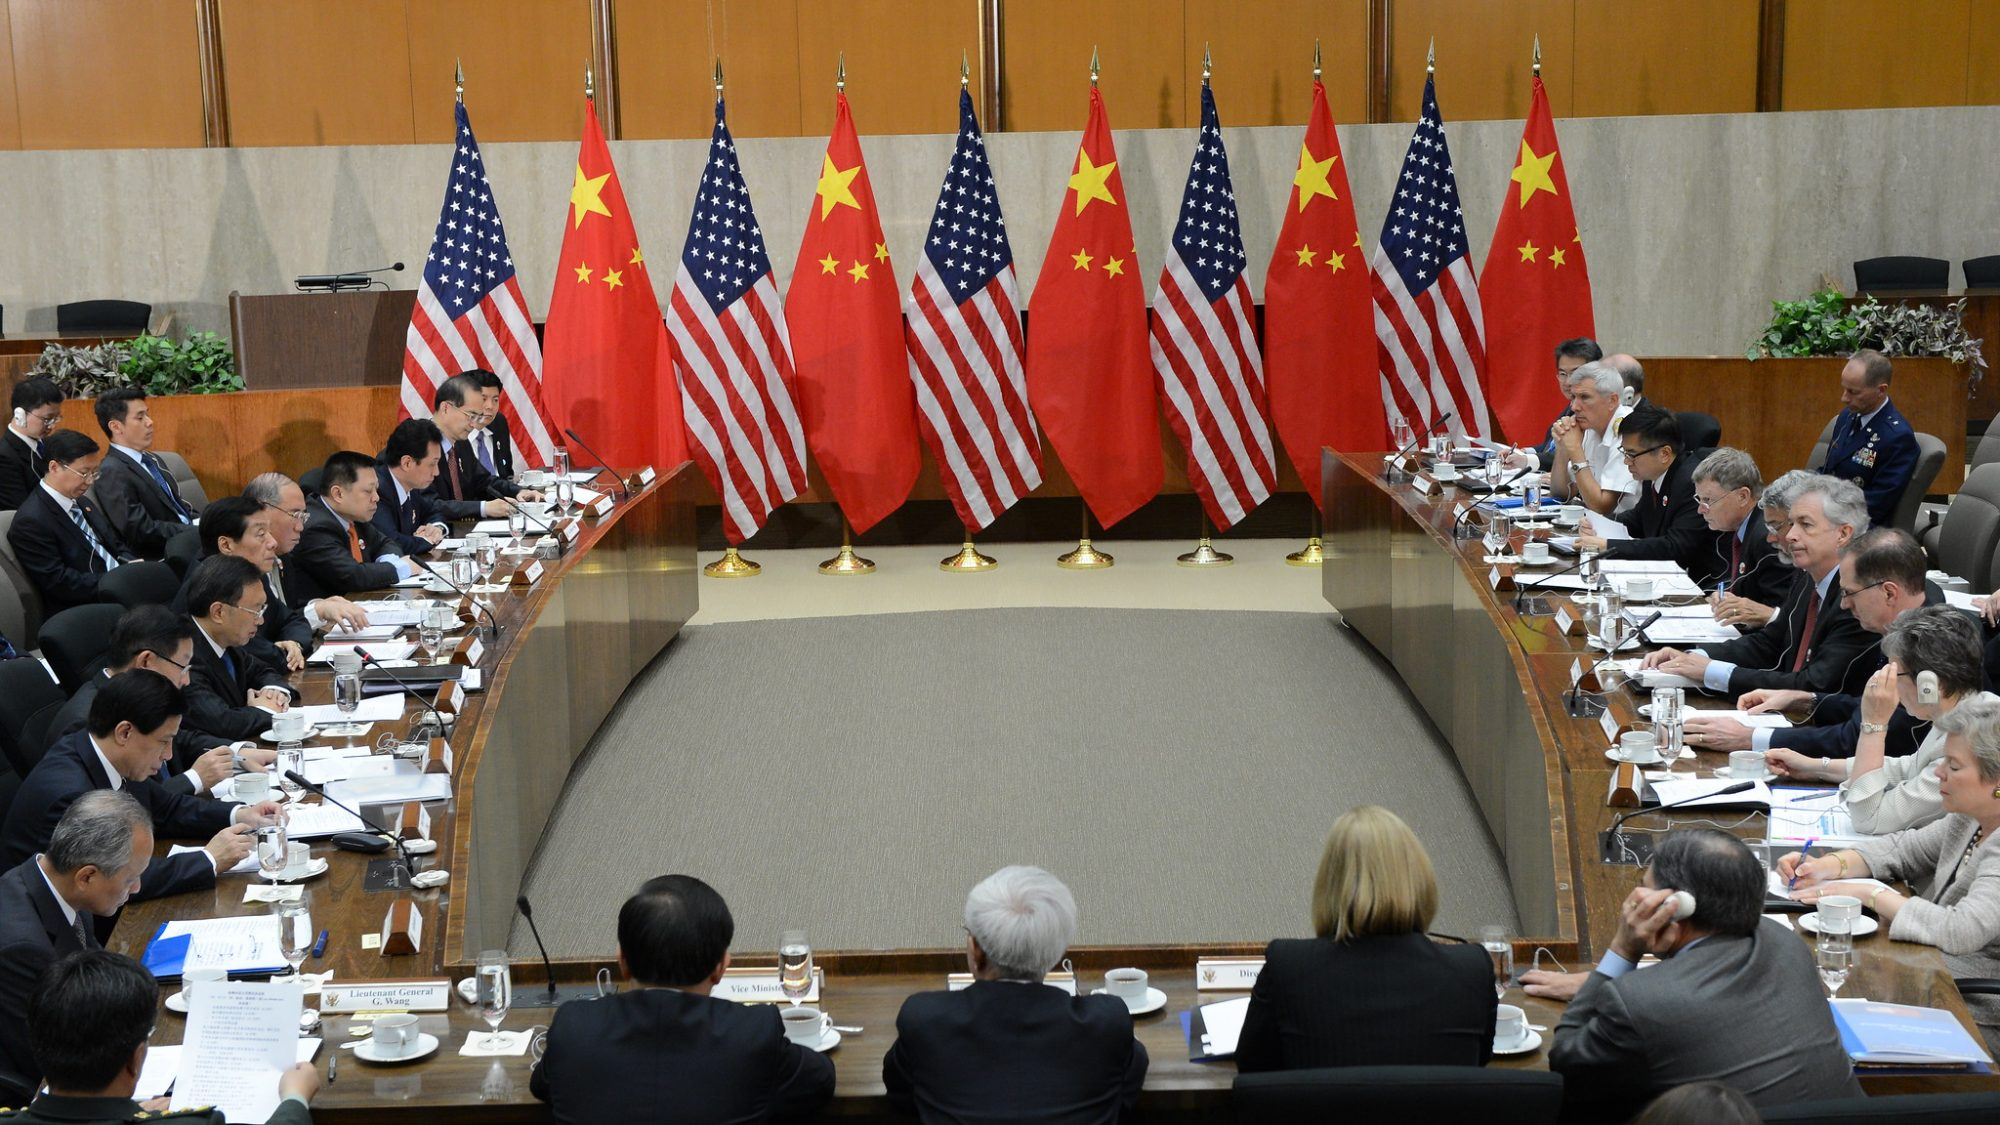 Chinese and American flags during international negotiations